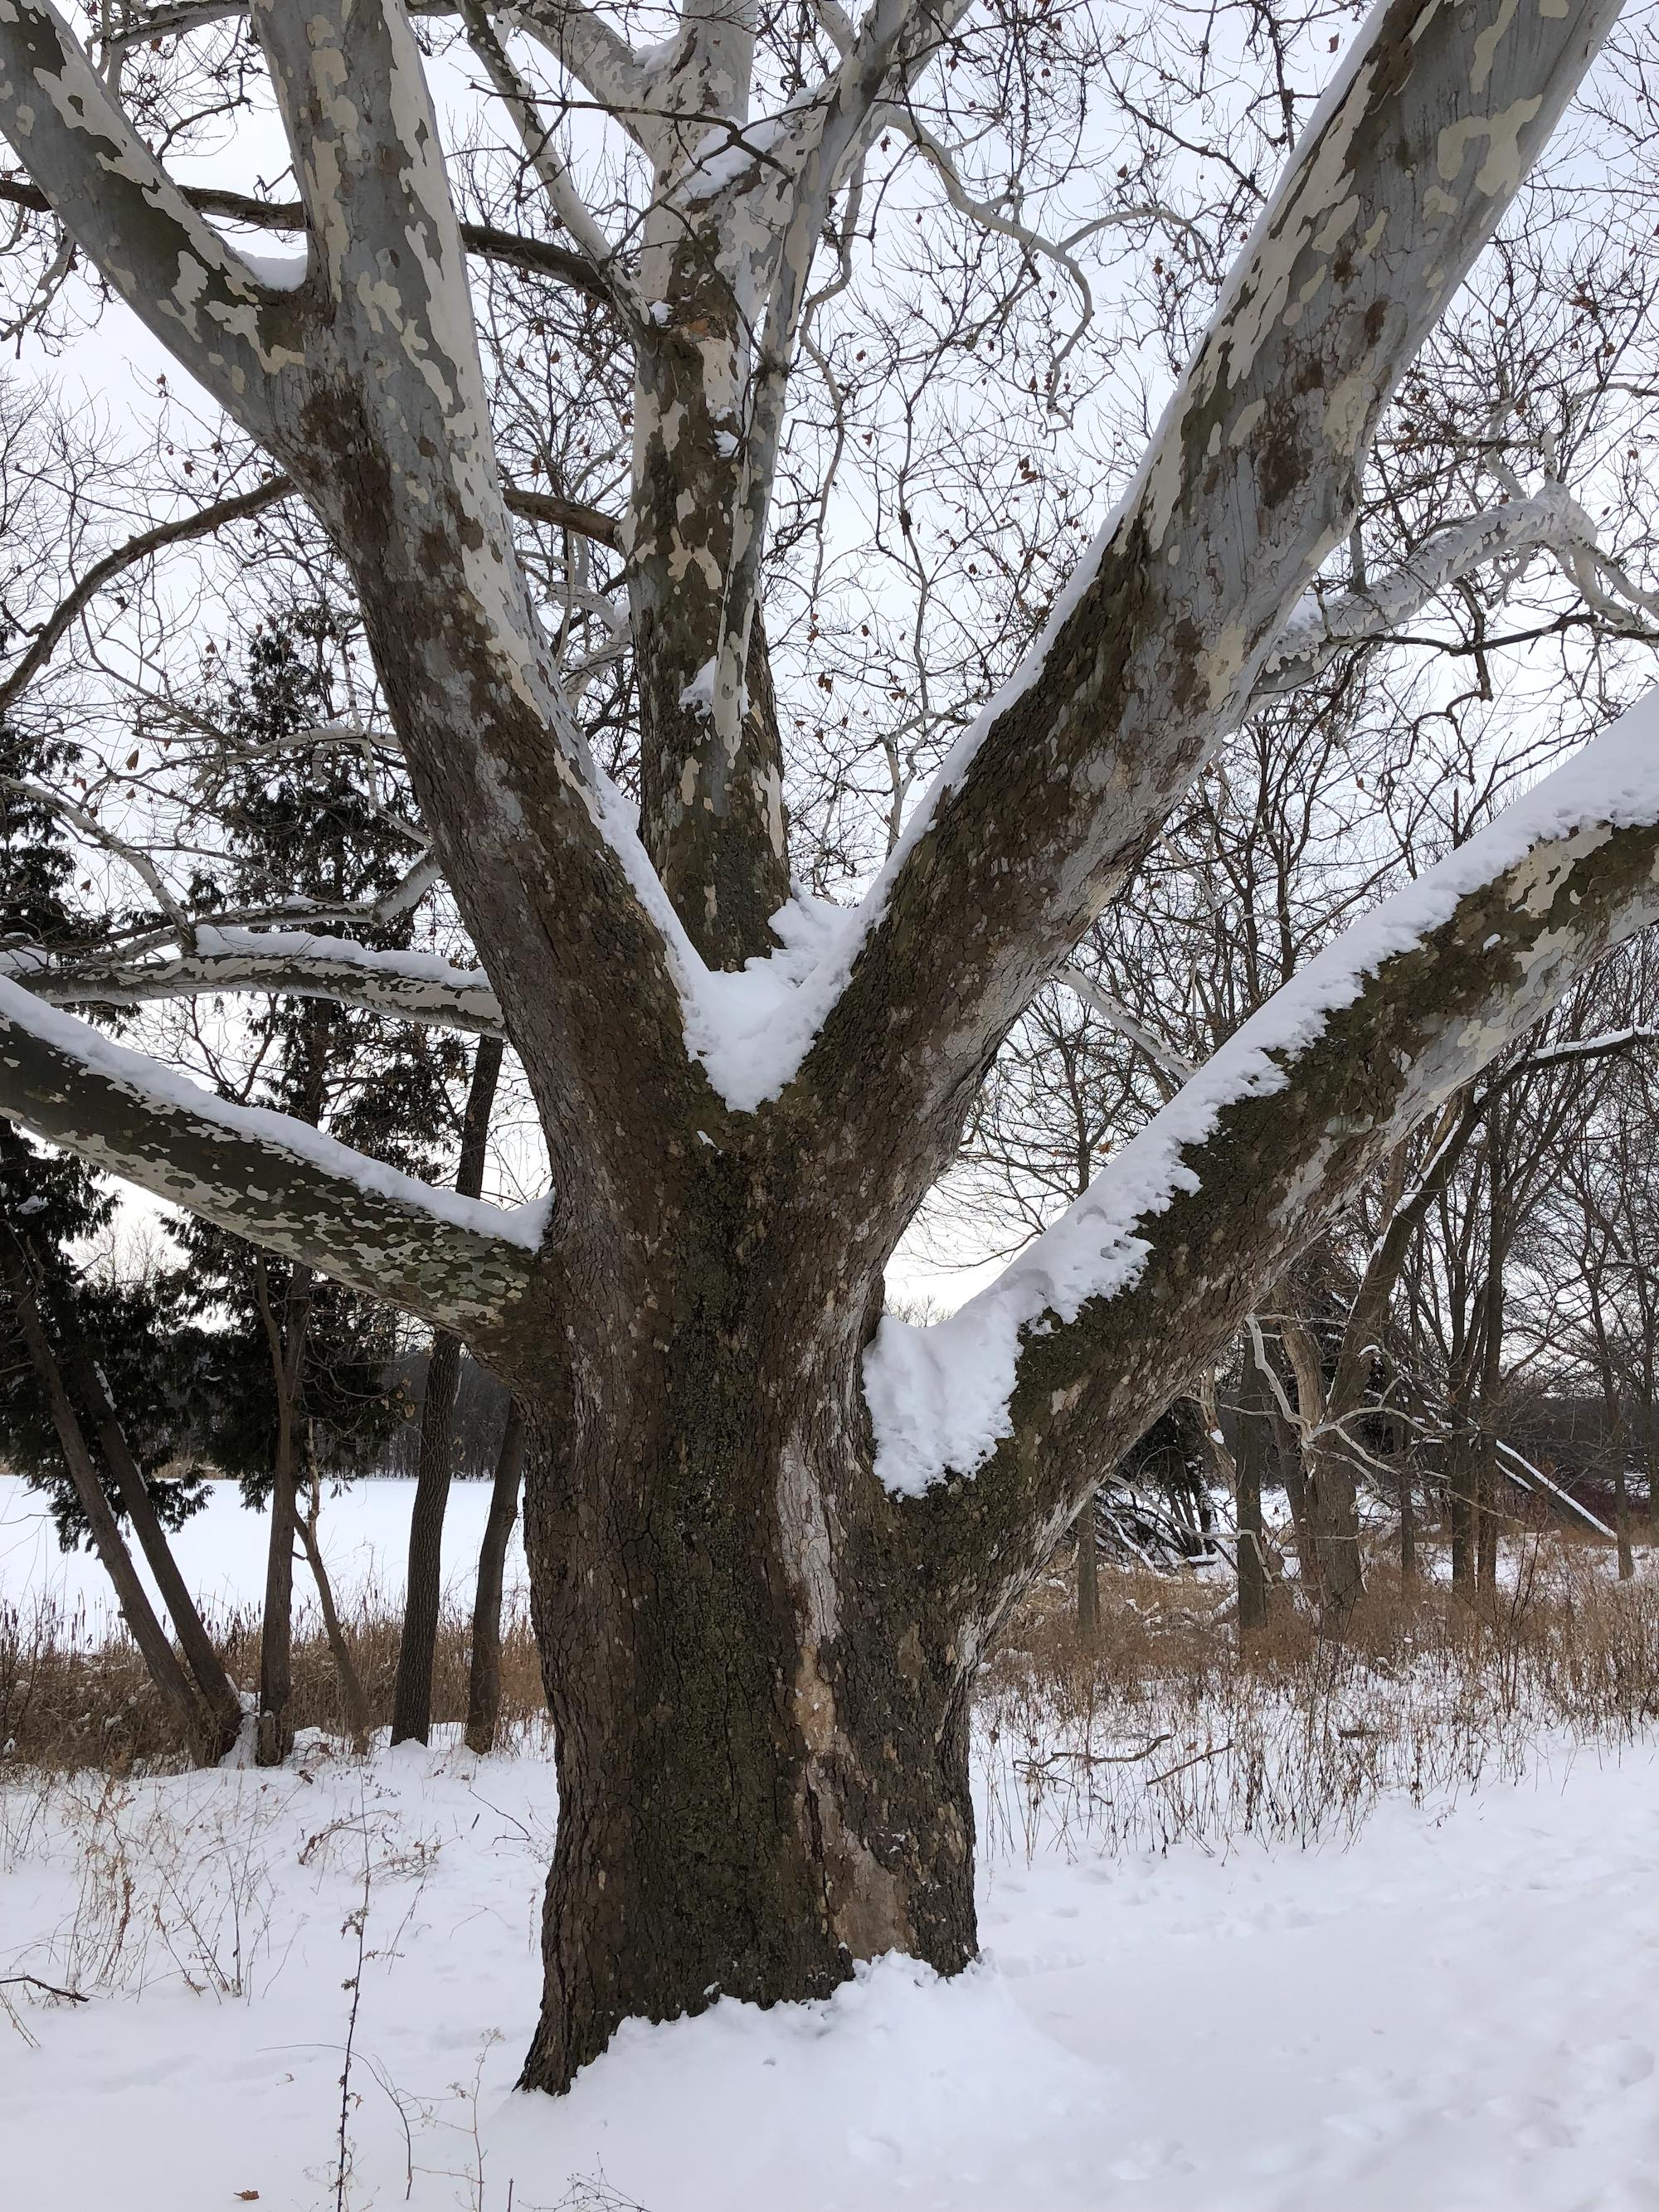 Sycamore tree between Ho-Nee-Um Pond and Arbor Drive on north shore of Lake Wingra on February 10, 2018.